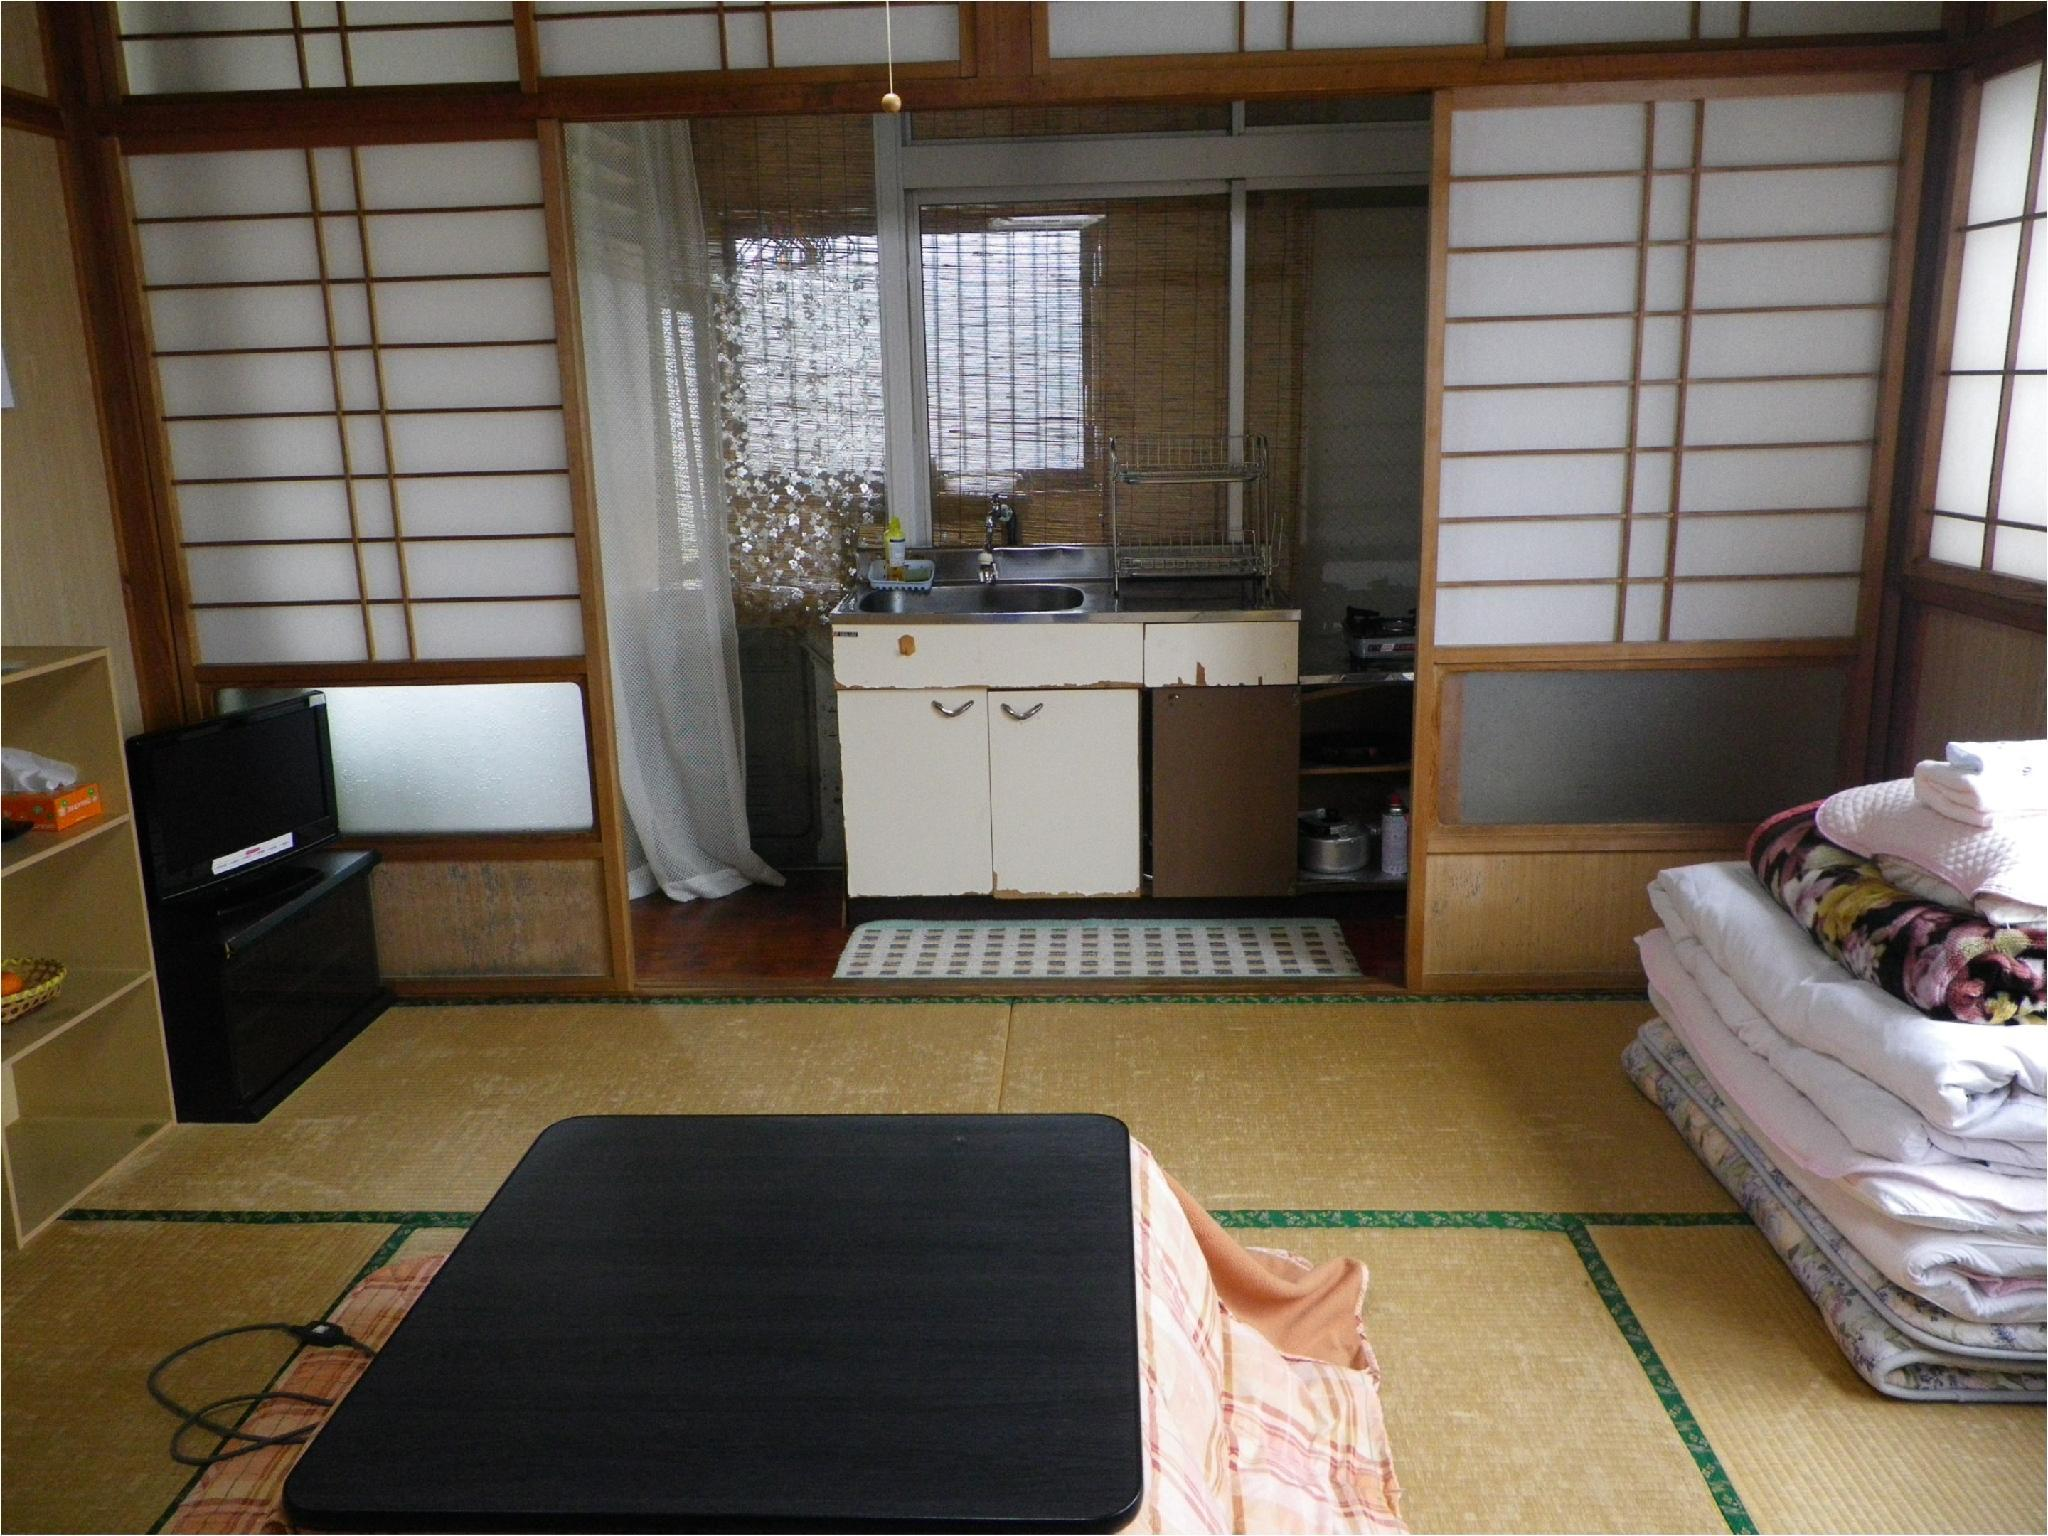 Japanese-style Room with Simple Kitchen (Main Building)